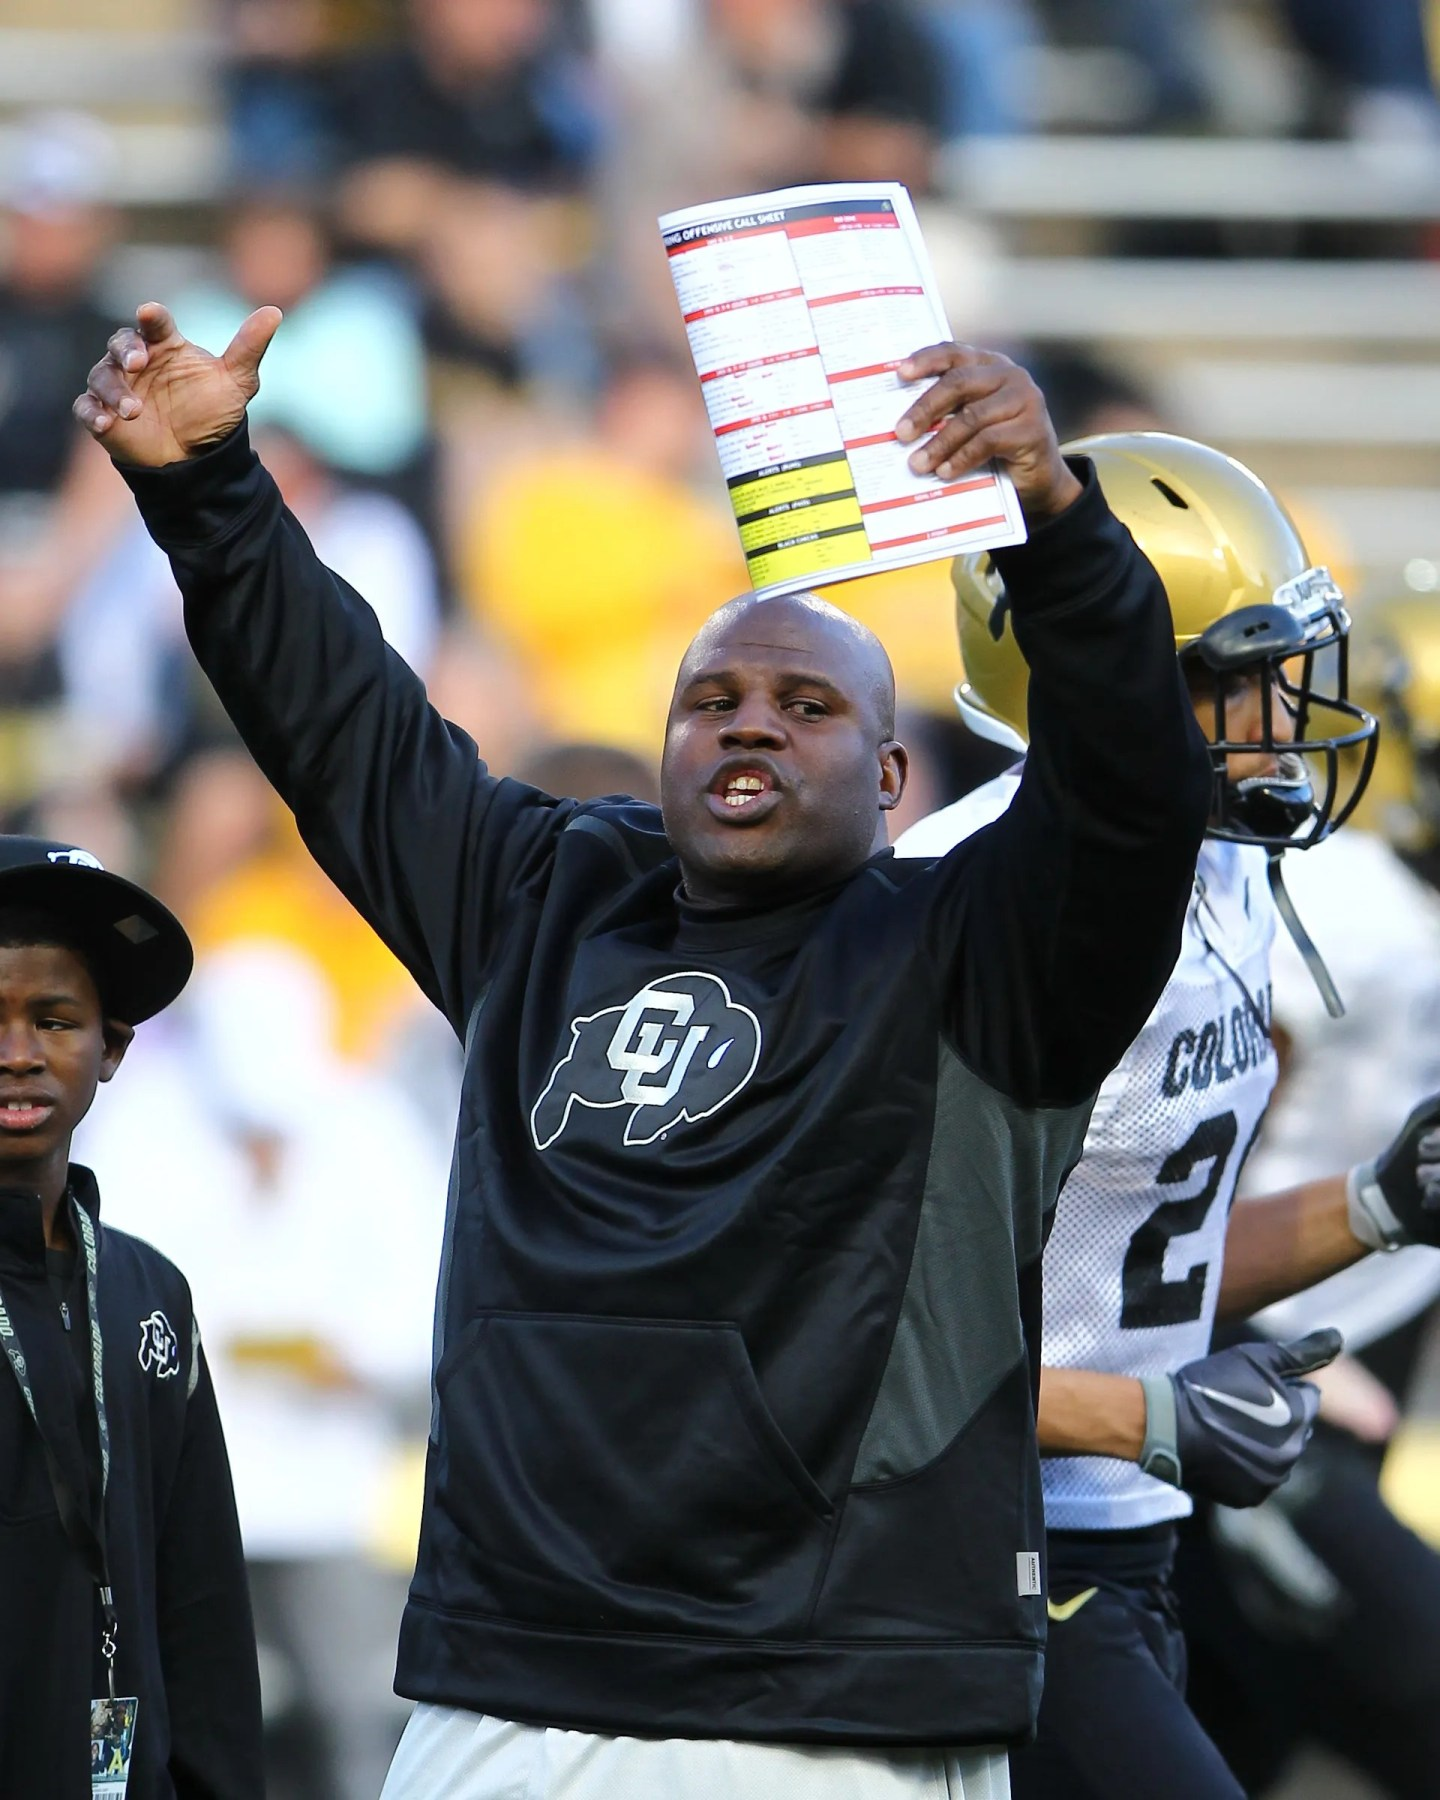 Eric Bieniemy was approached by his alma mater, Colorado, this year about their head coach position but decided to stay with the Chiefs.